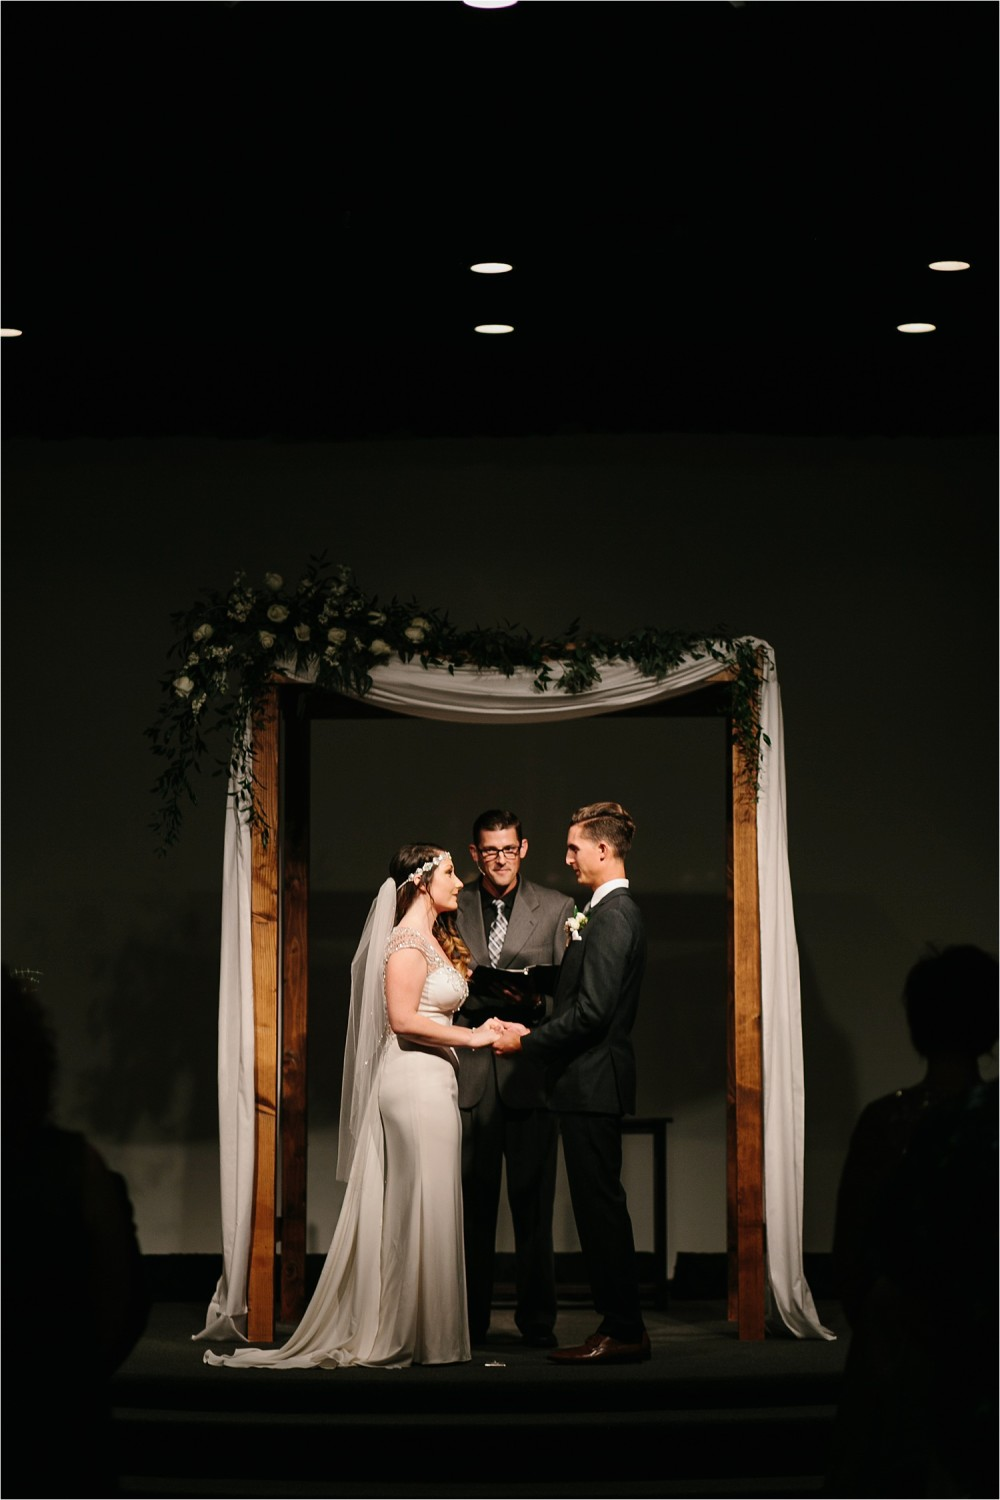 whittney-drew-__-an-intimate-wine-and-navy-wedding-in-an-industrial-venue-at-loft-123-in-paris-tx-by-north-texas-wedding-photographer-rachel-meagan-photography-_-055